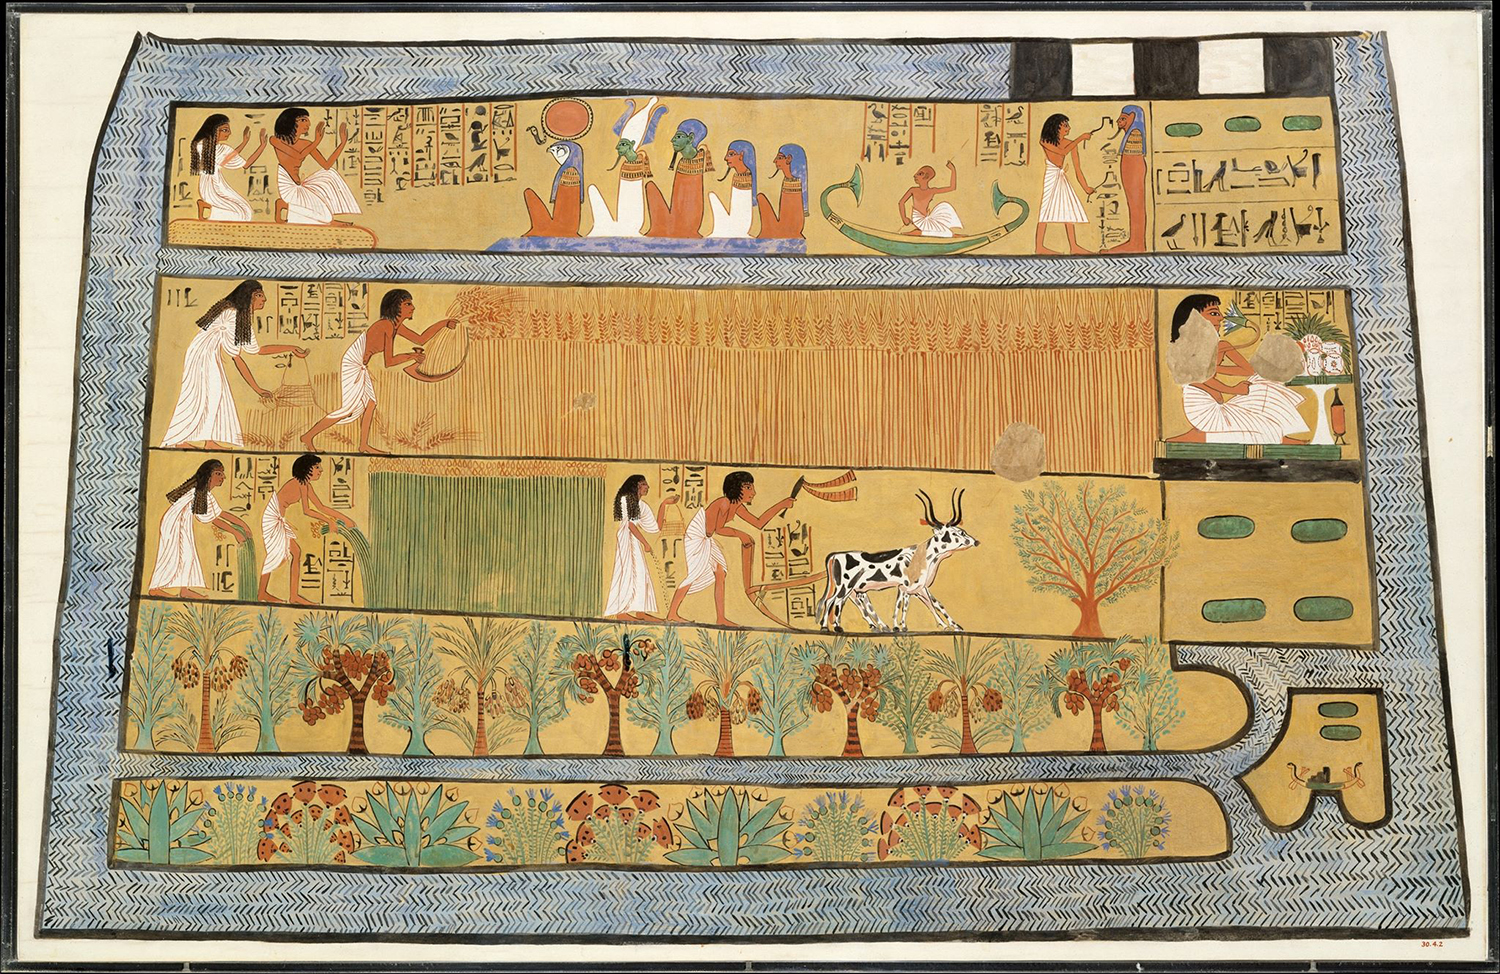 Figure 28: Painted facsimile of the decoration on the east wall of the tomb of Sennedjem. In this scene, Sennedjem and his wife carry out agricultural tasks in the afterlife. Sennedjem lived during Egypt's 19th Dynasty (ca. 1295-1213 BCE). Image courtesy of the Metropolitan Museum of Art, NYC. Painting by Charles K. Wilkinson, accession number 30.4.2.